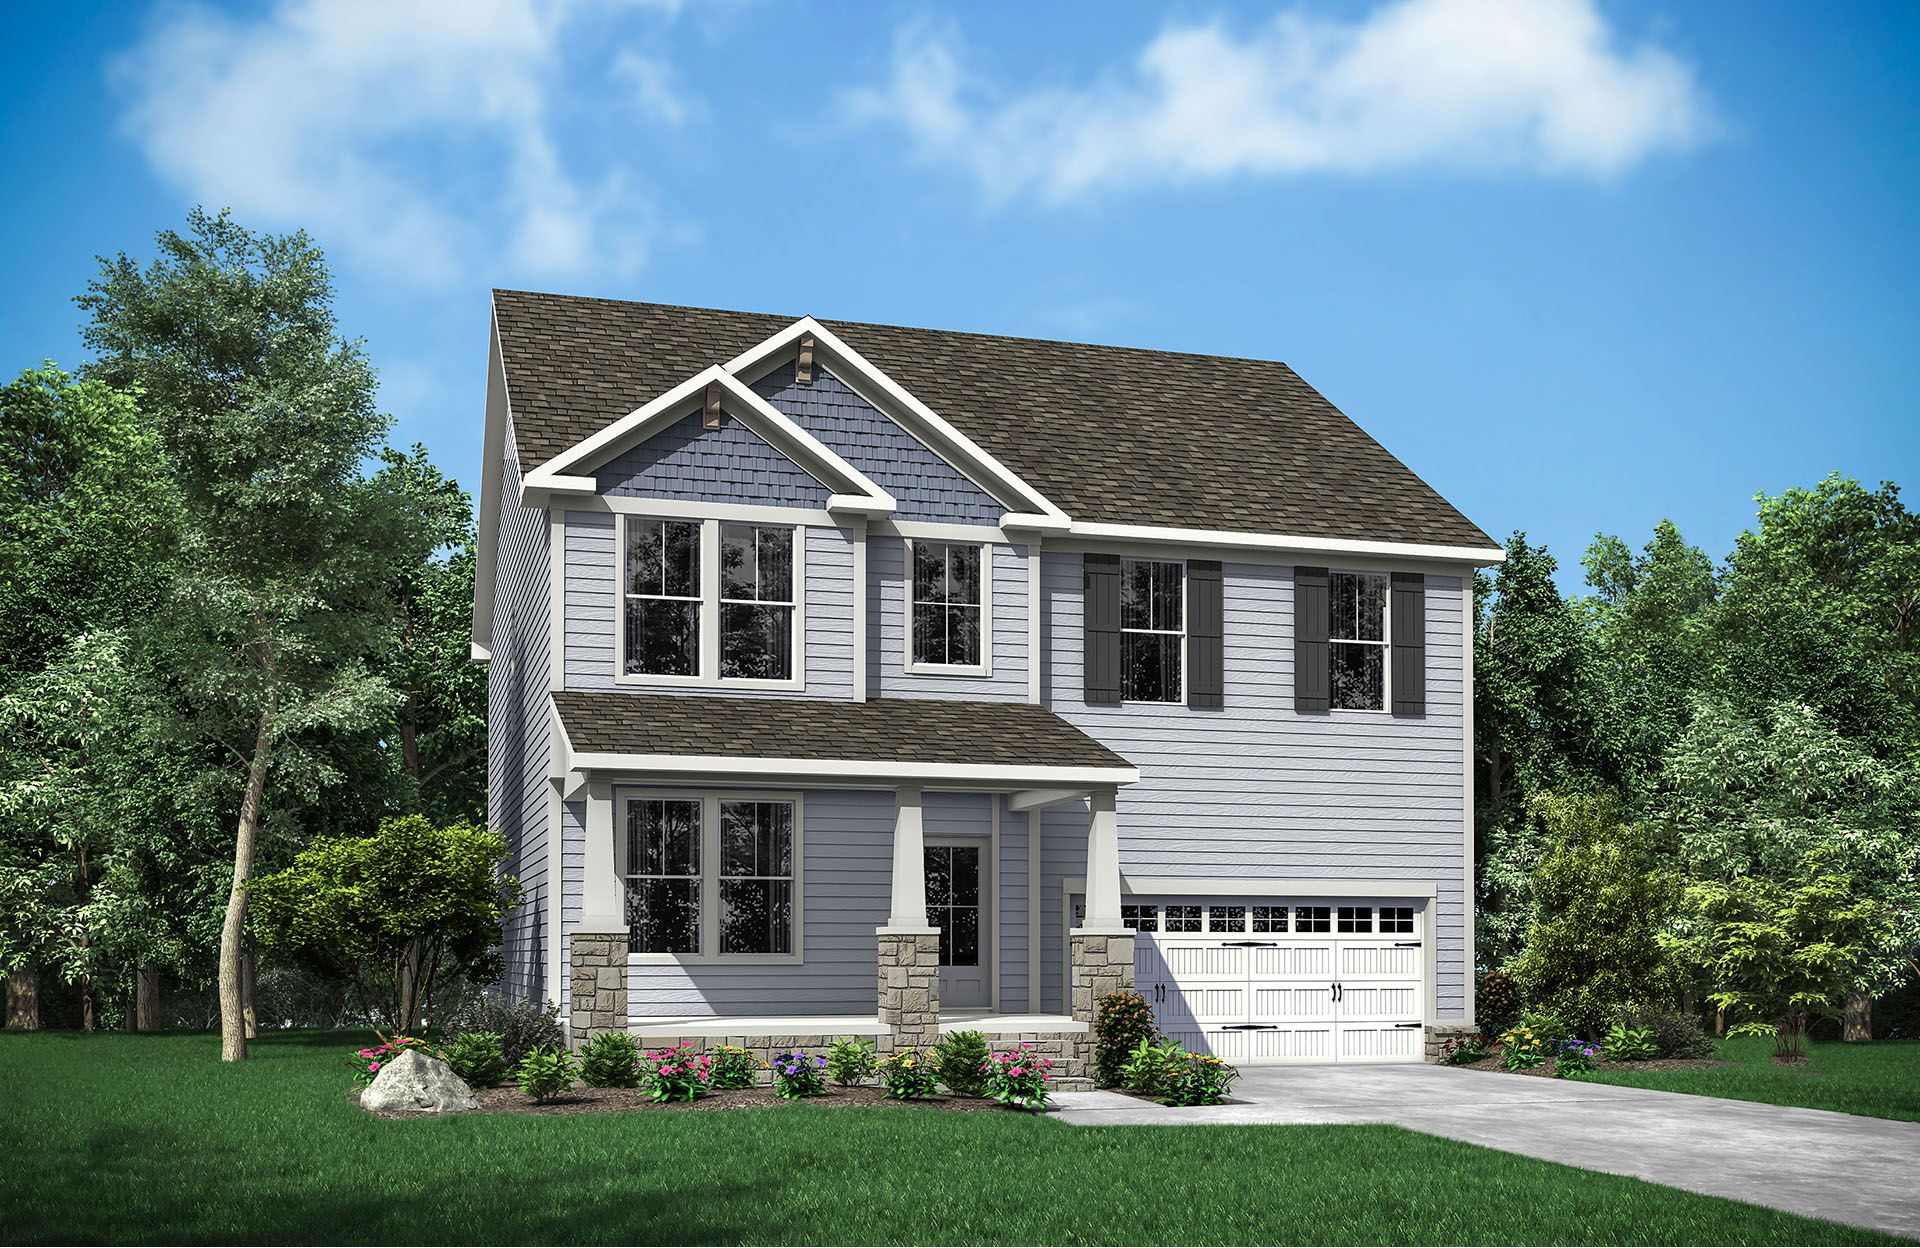 Trawick A:Trawick A with front porch